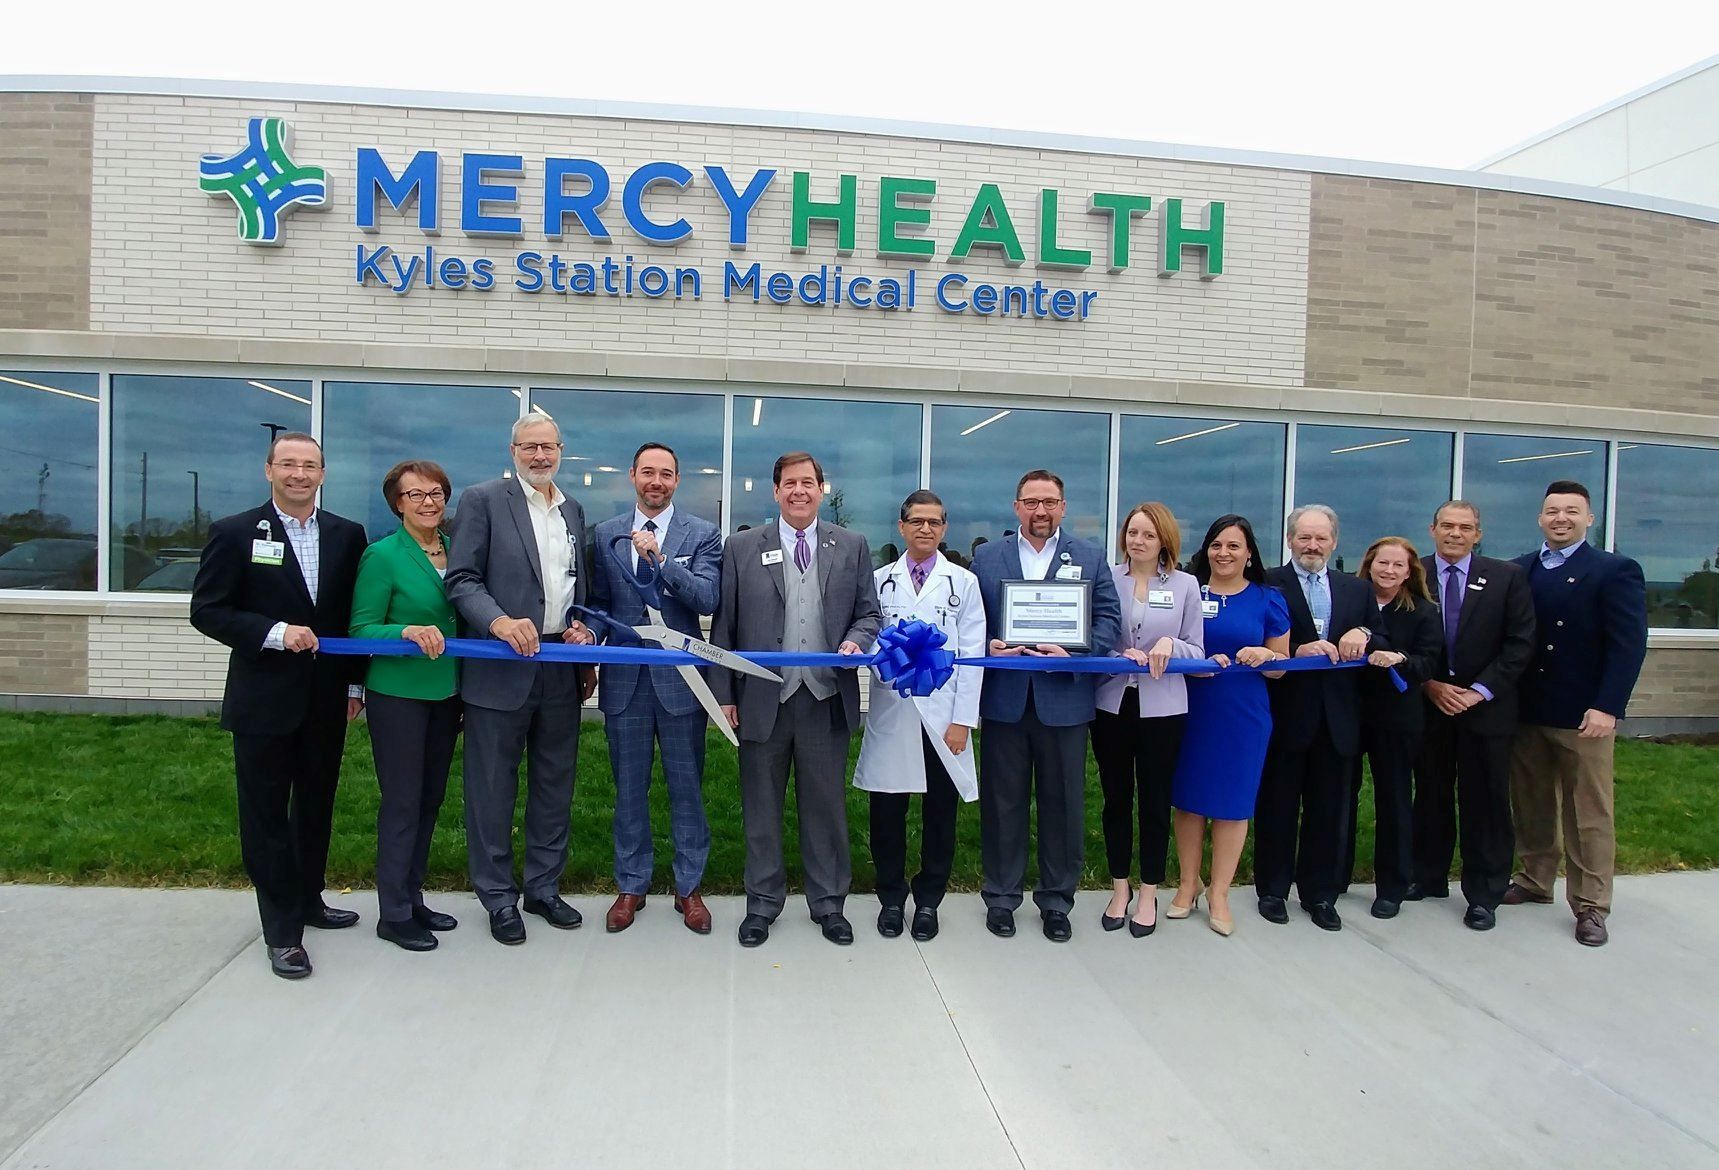 Mercy Health Kyles Station Medical Center